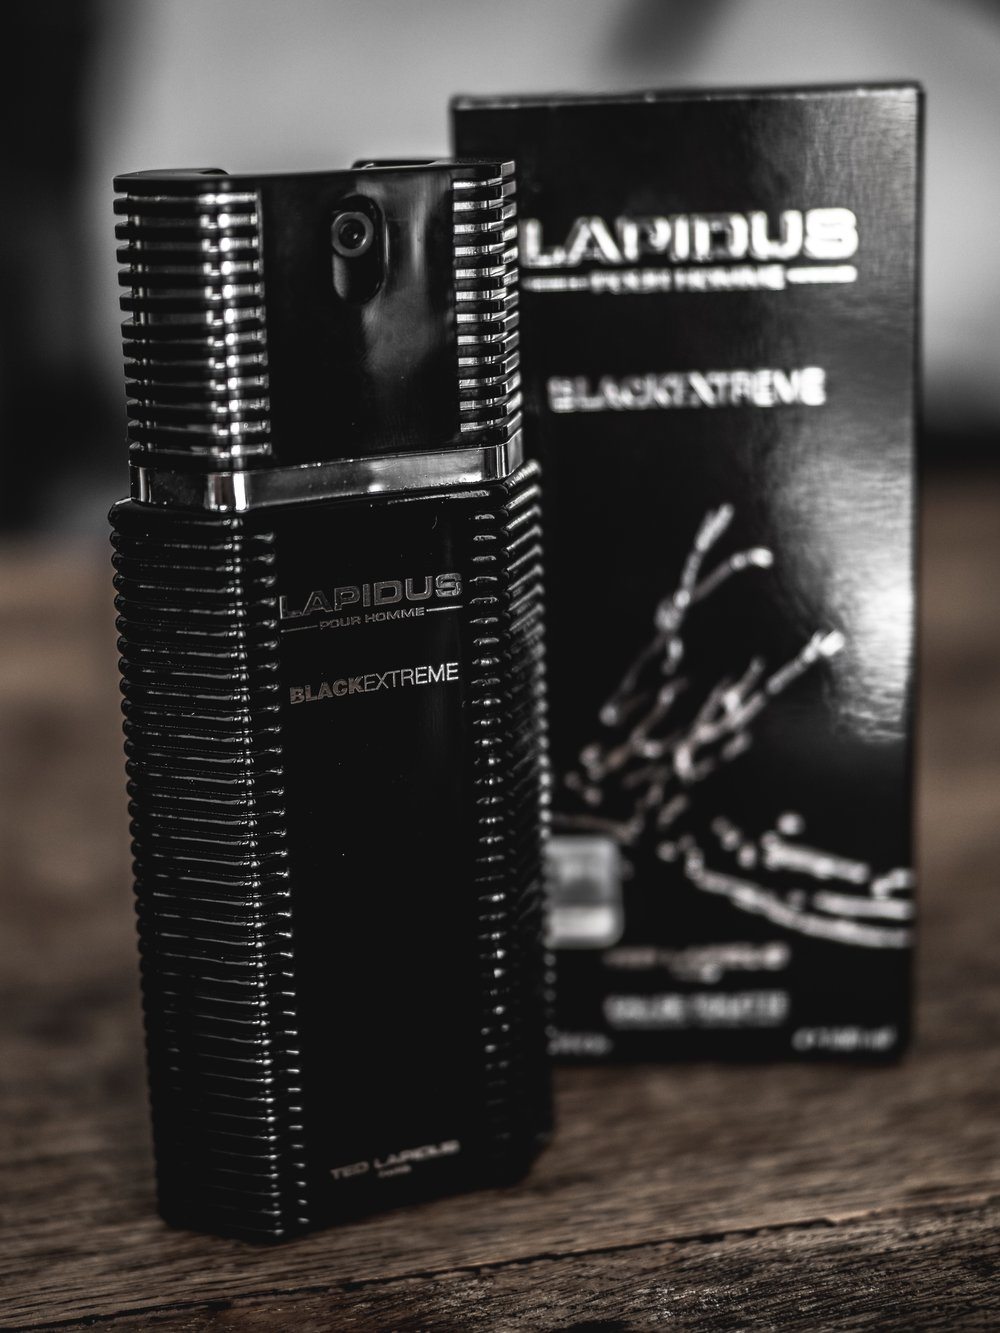 Lapidus Pour Homme Black Extreme 2012 Fragrance Review